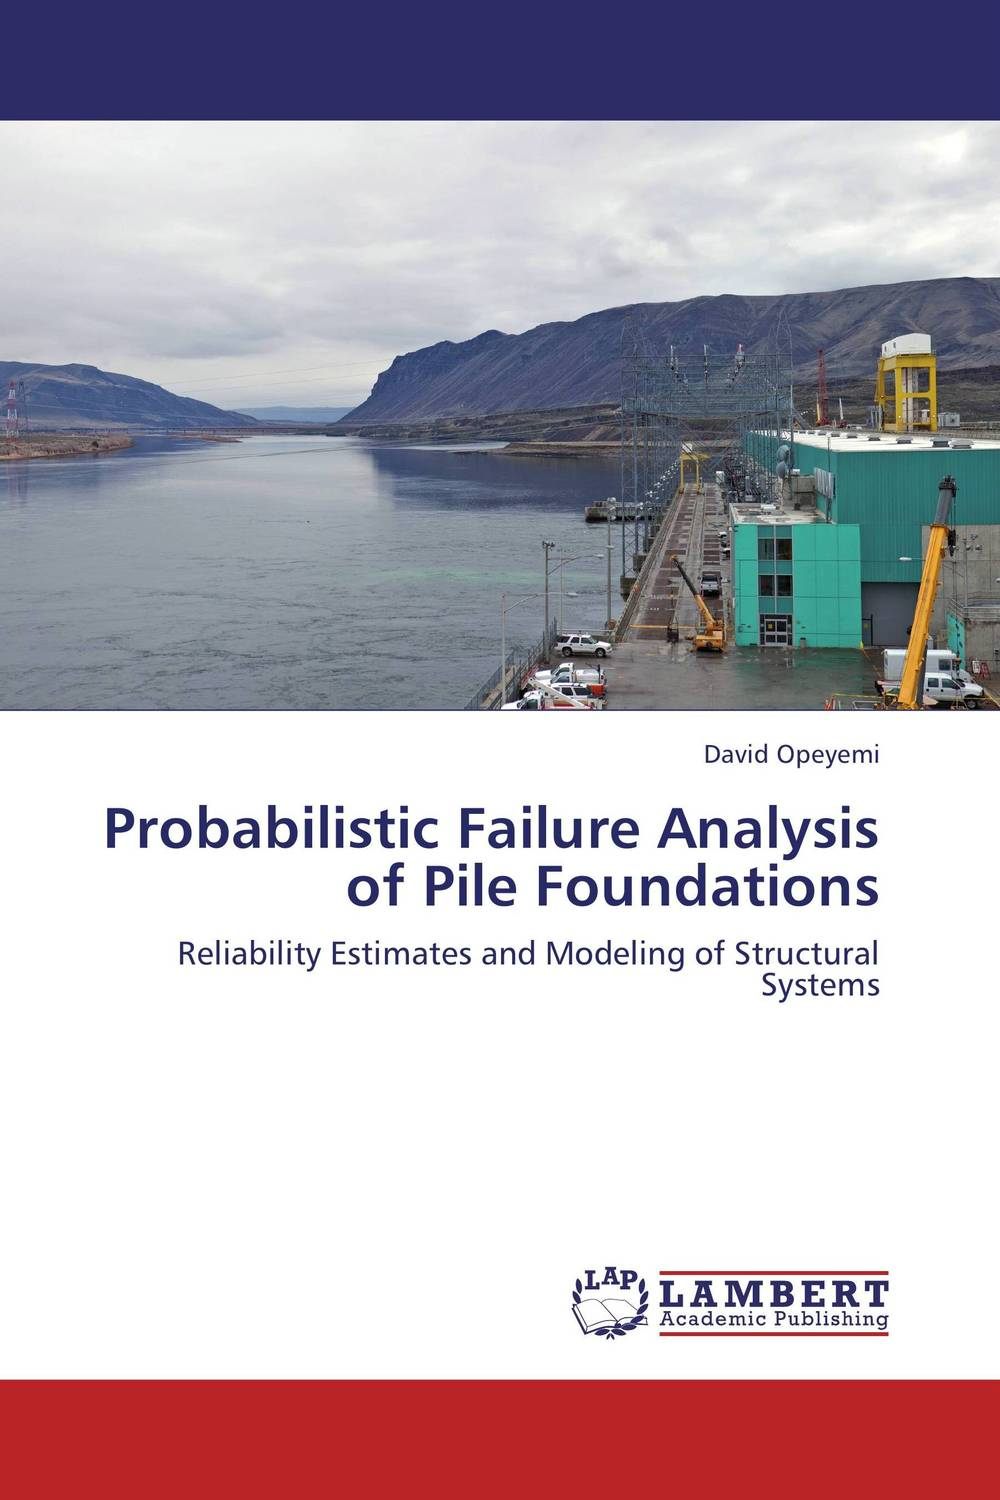 Probabilistic Failure Analysis of Pile Foundations dynamic analysis and failure modes of simple structures